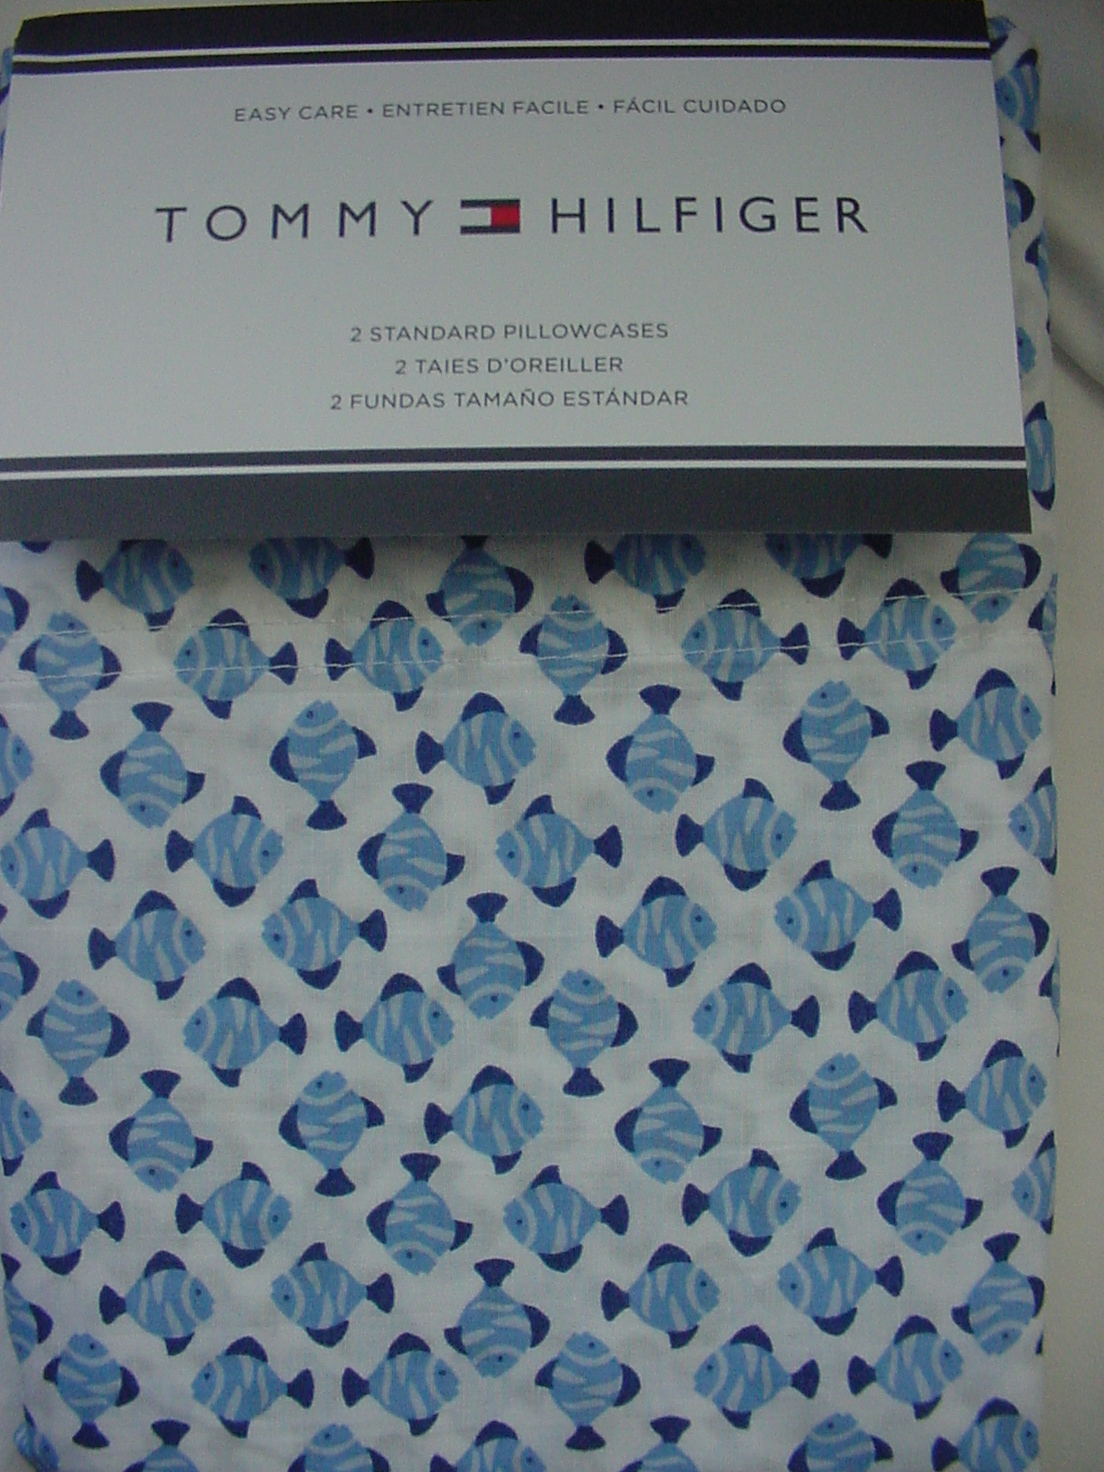 Tommy Hilfiger Blue Fish on White Pillowcases Standard